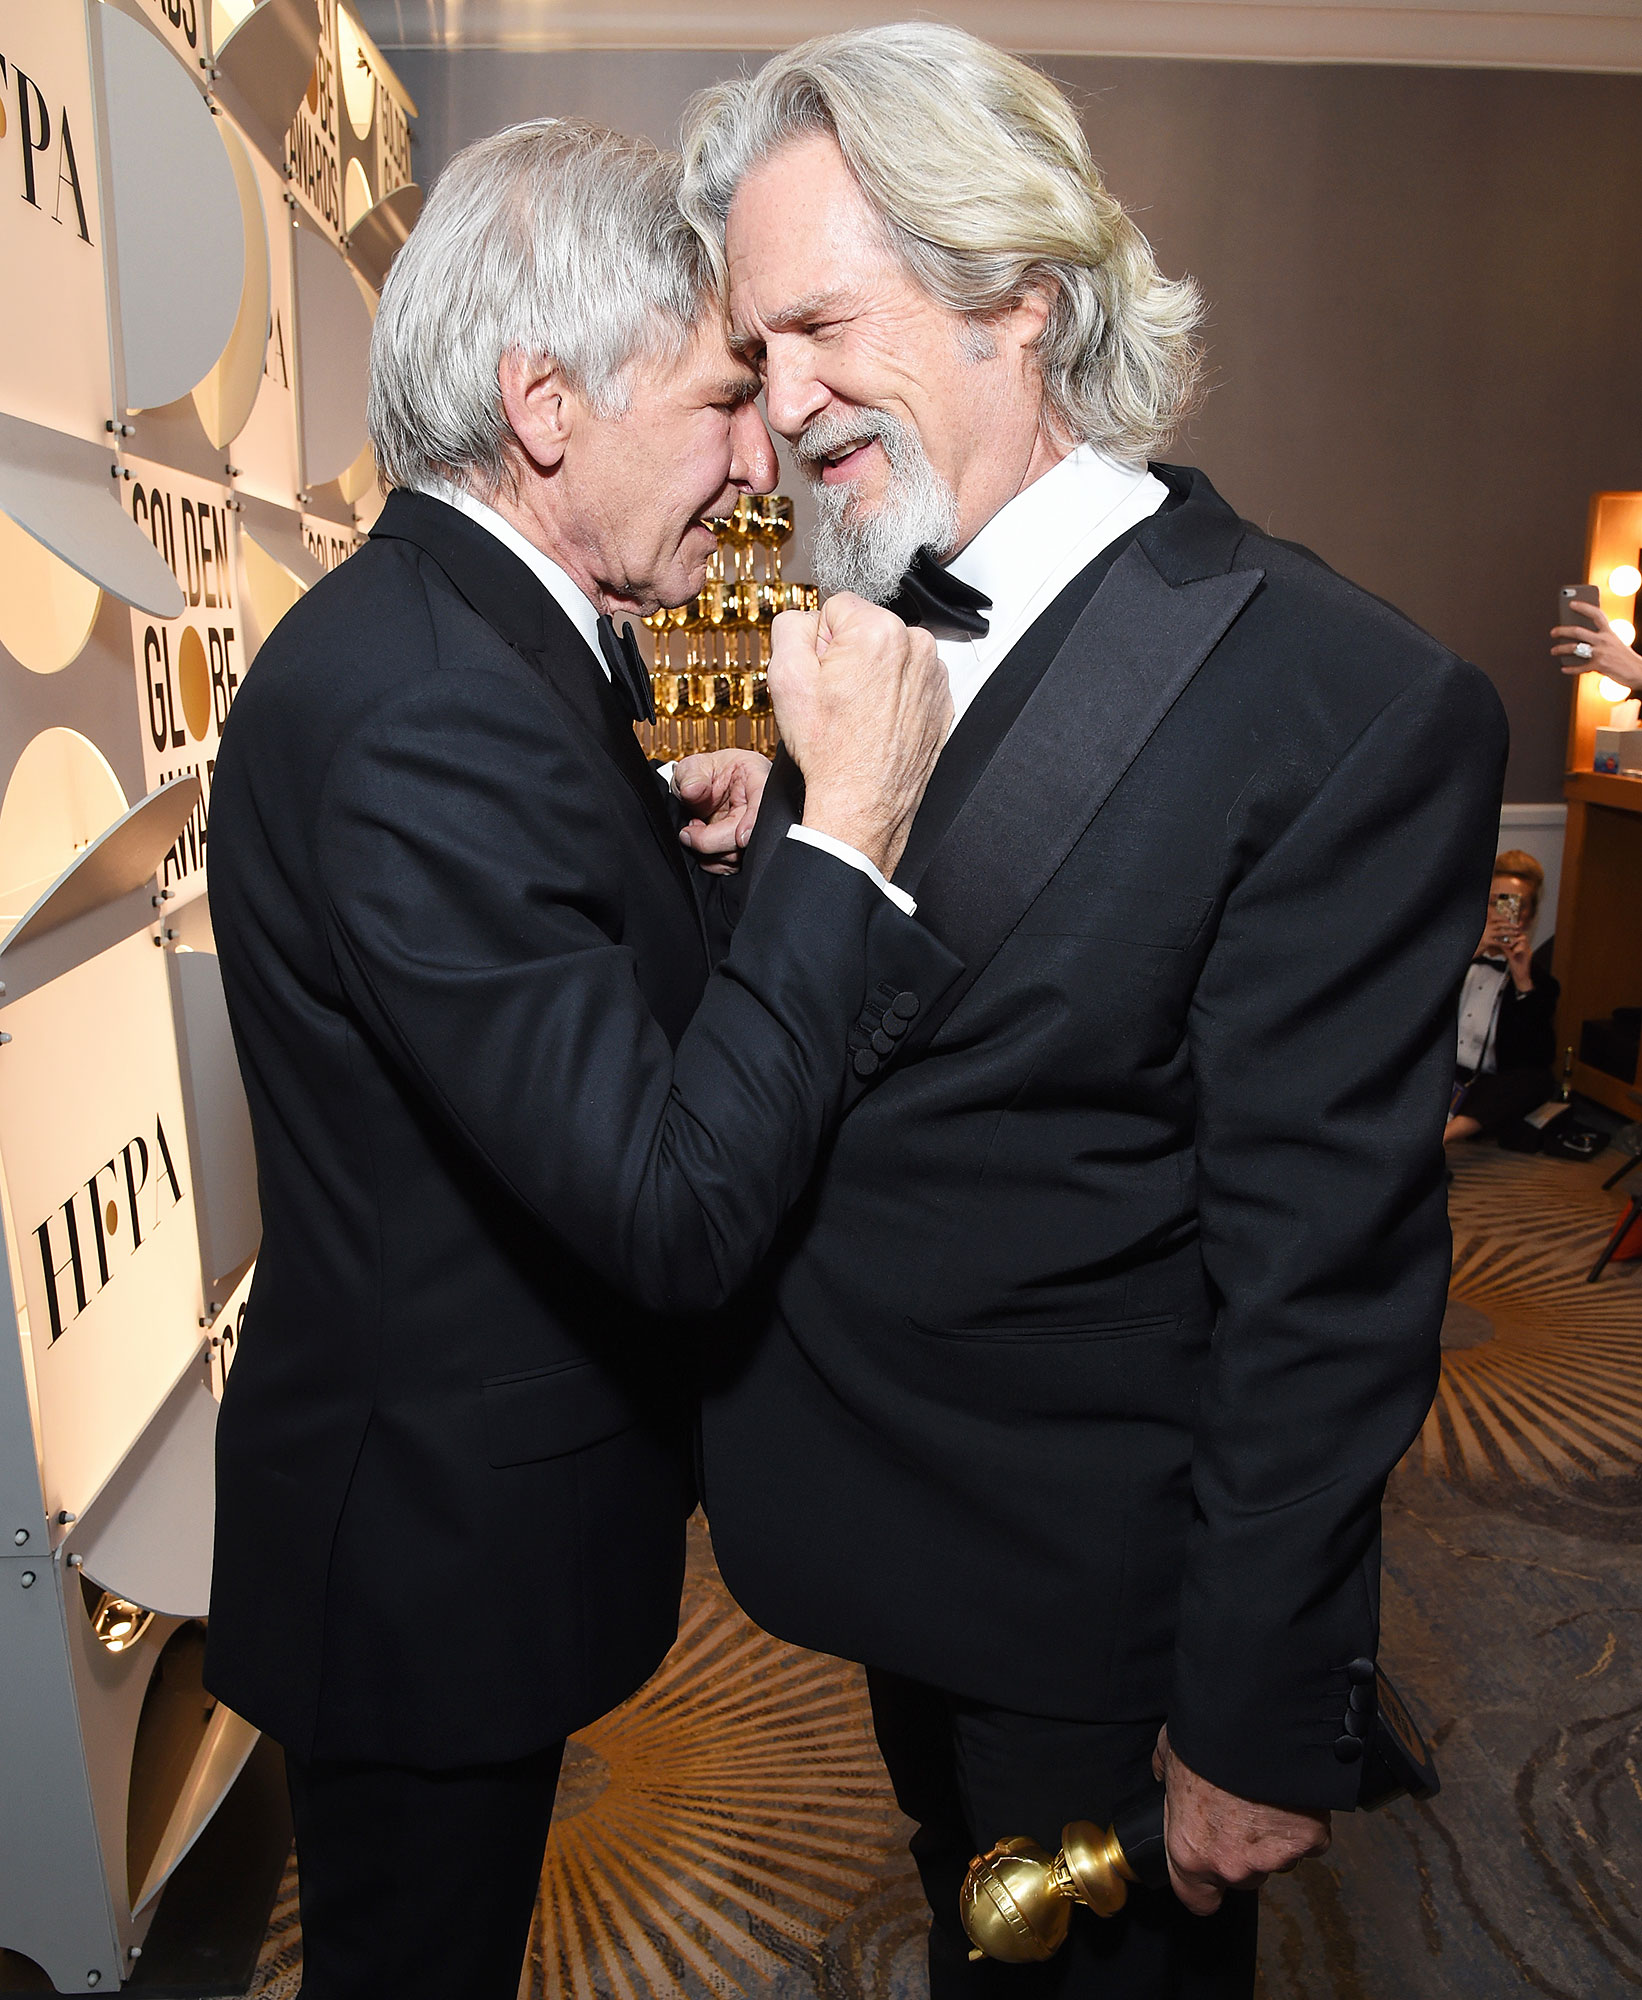 Inside Golden Globes 2019 Harrison Ford Jeff Bridges - Harrison Ford and Jeff Bridges spent some time together backstage after the latter was honored with the Cecil B. DeMille Award.